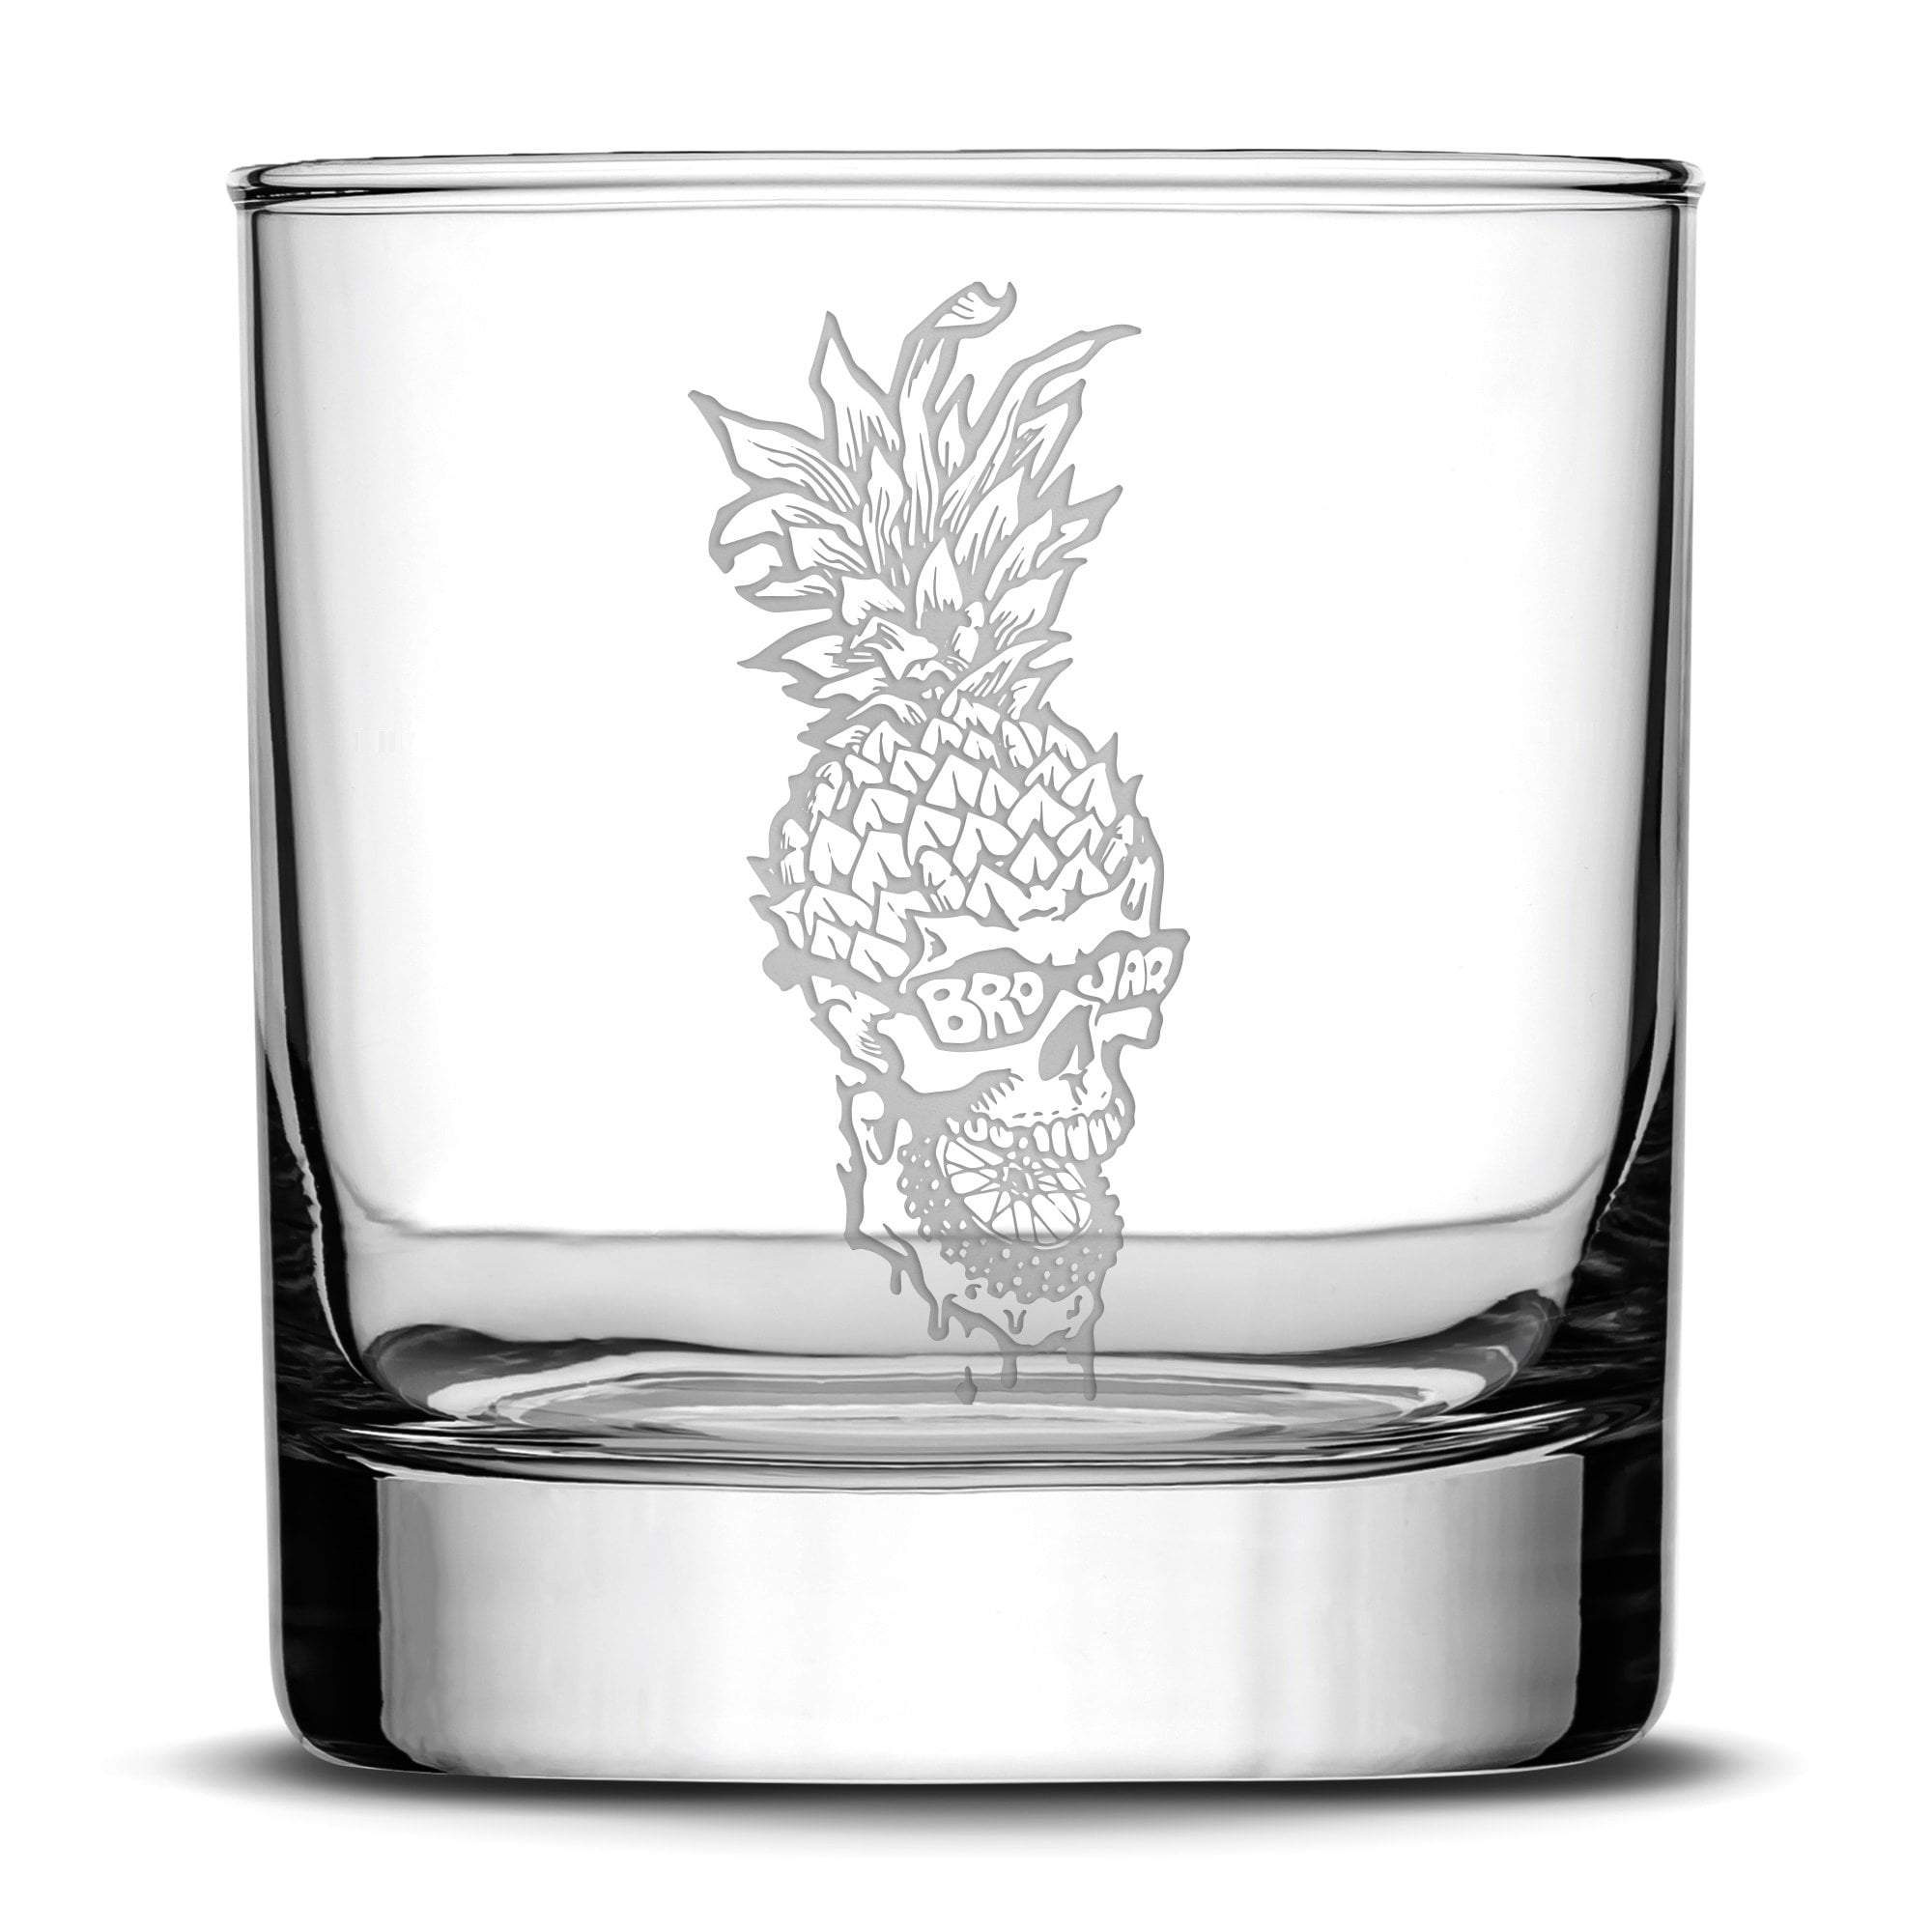 Brojaq Whiskey Glass, Pineapple Skull, 11oz by Integrity Bottles